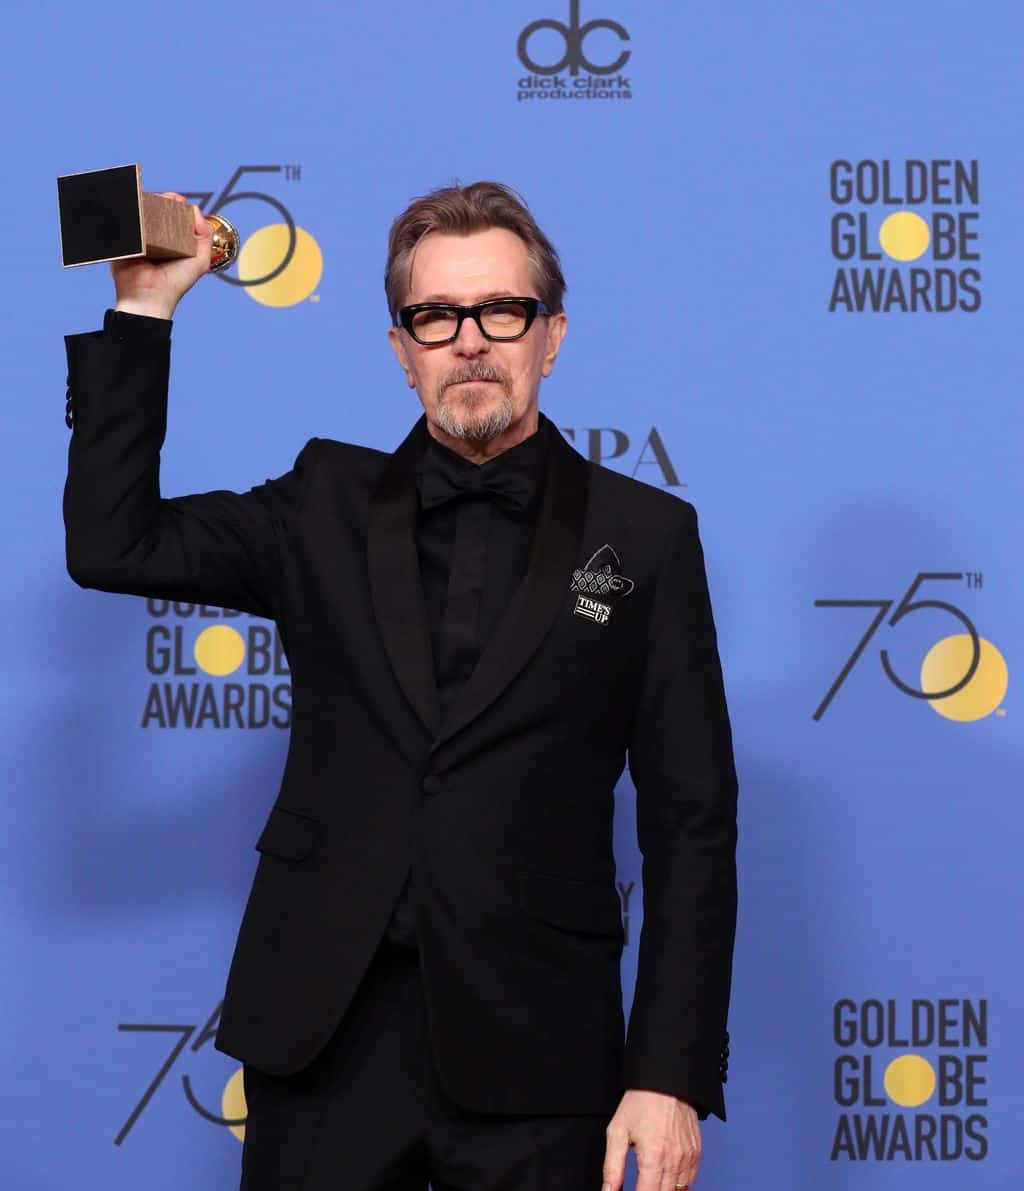 Gary Oldman, mejor actor de drama por Darkest Hour. EFE